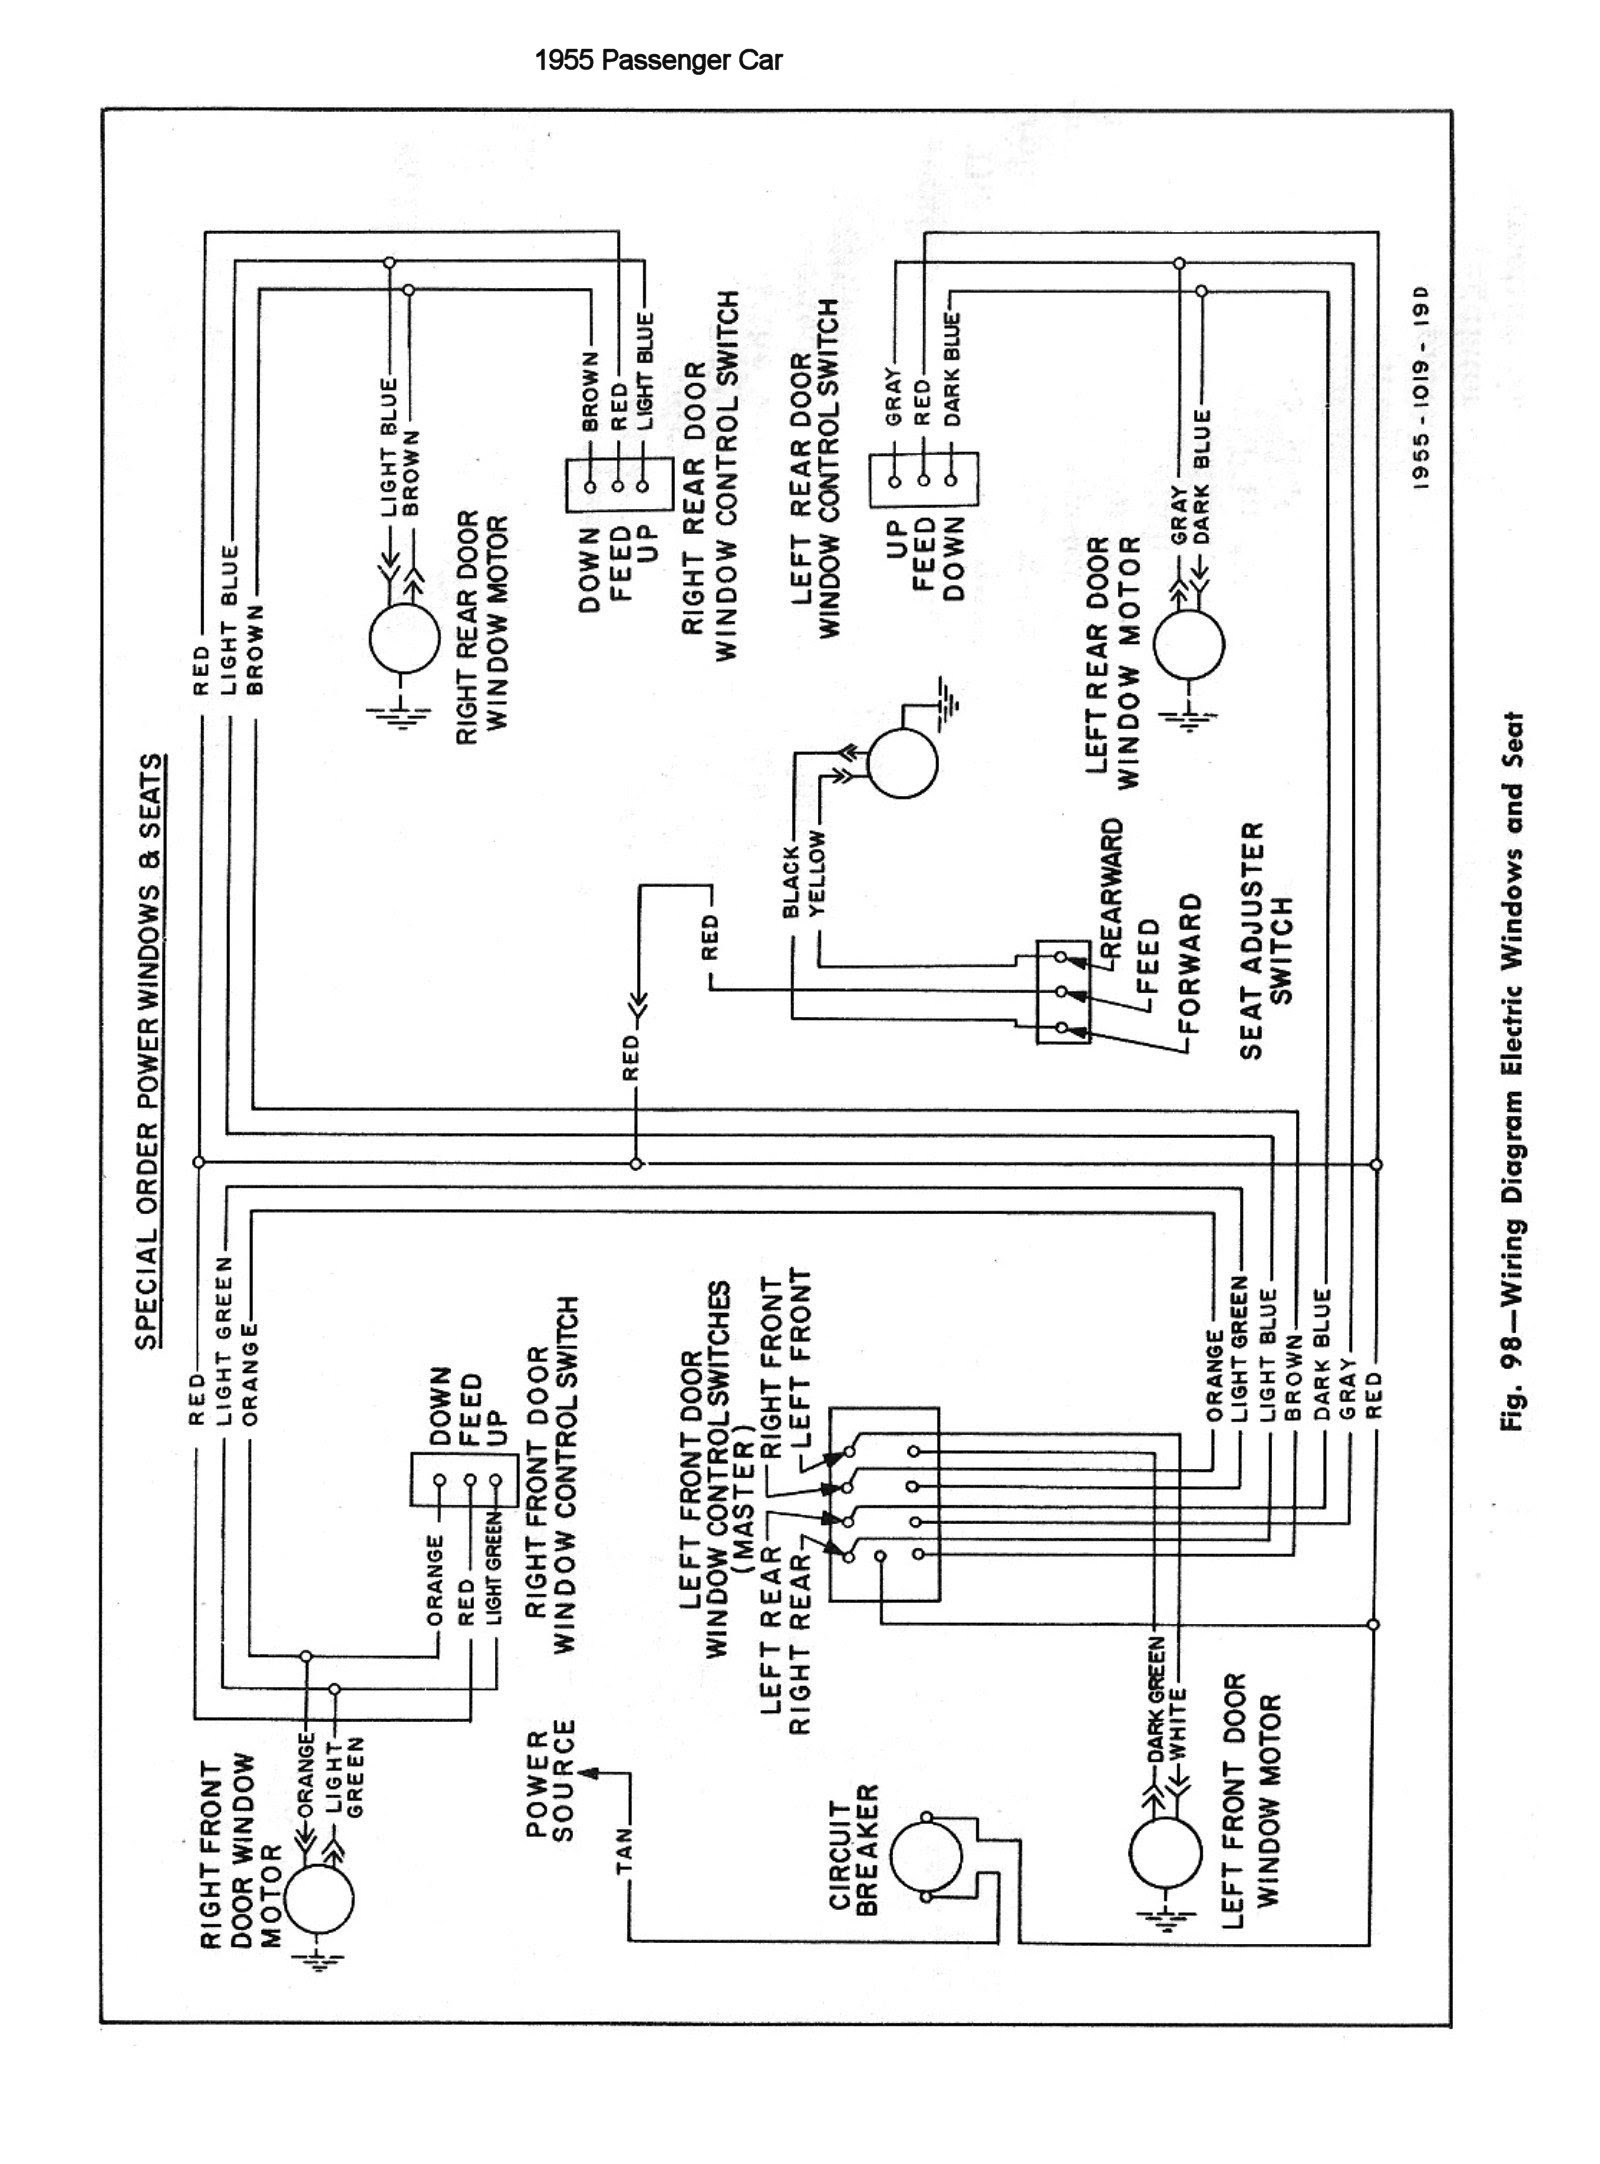 1956 Chevy Ignition Wiring Diagram Free Picture Wiring Diagram Corsa A Corsa A Pasticceriagele It